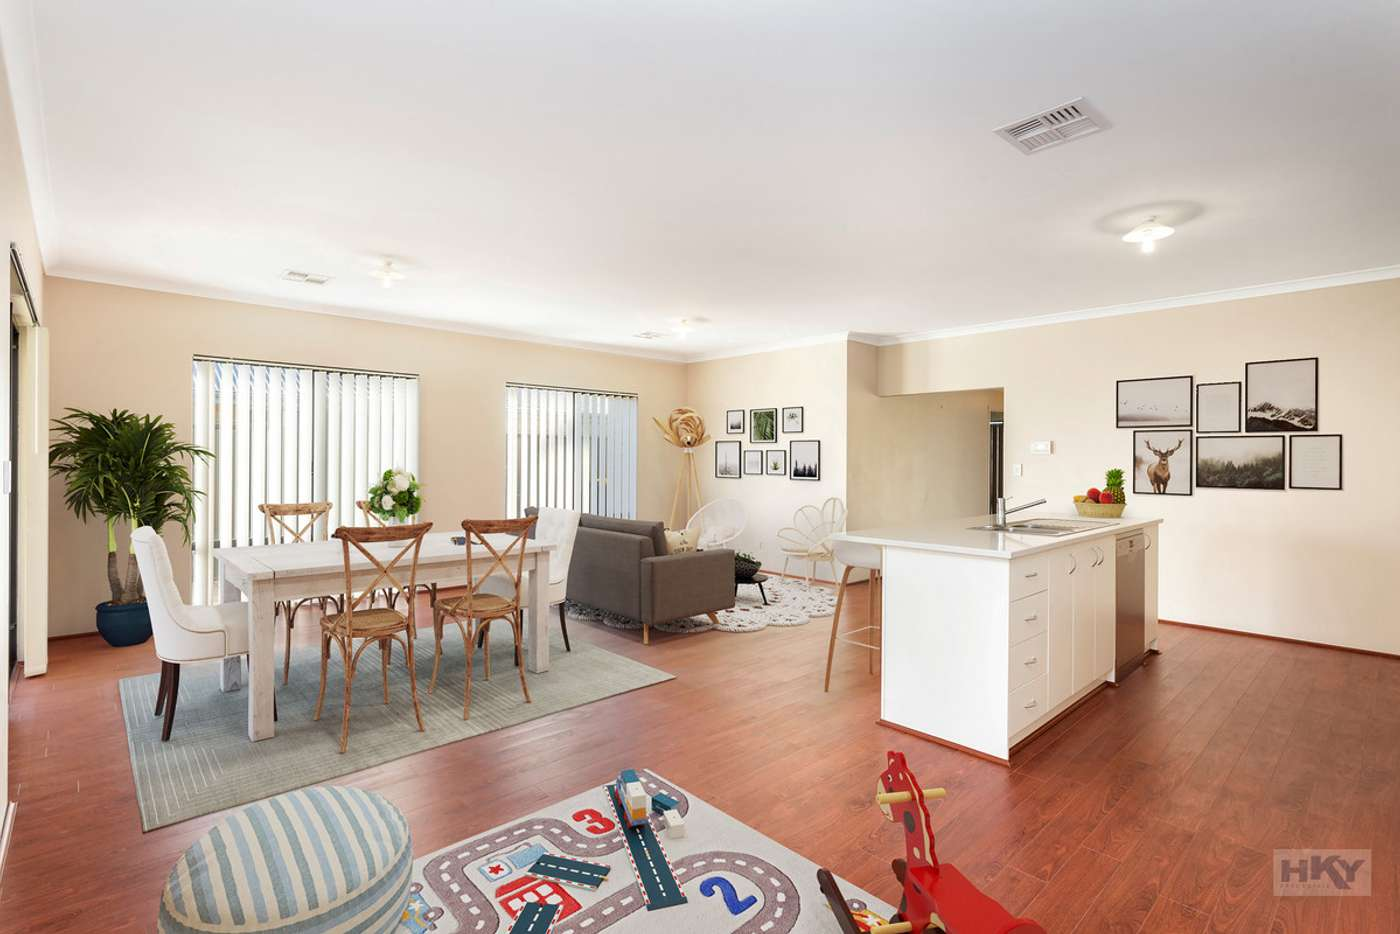 Sixth view of Homely house listing, 63 Arthur Street, Caversham WA 6055